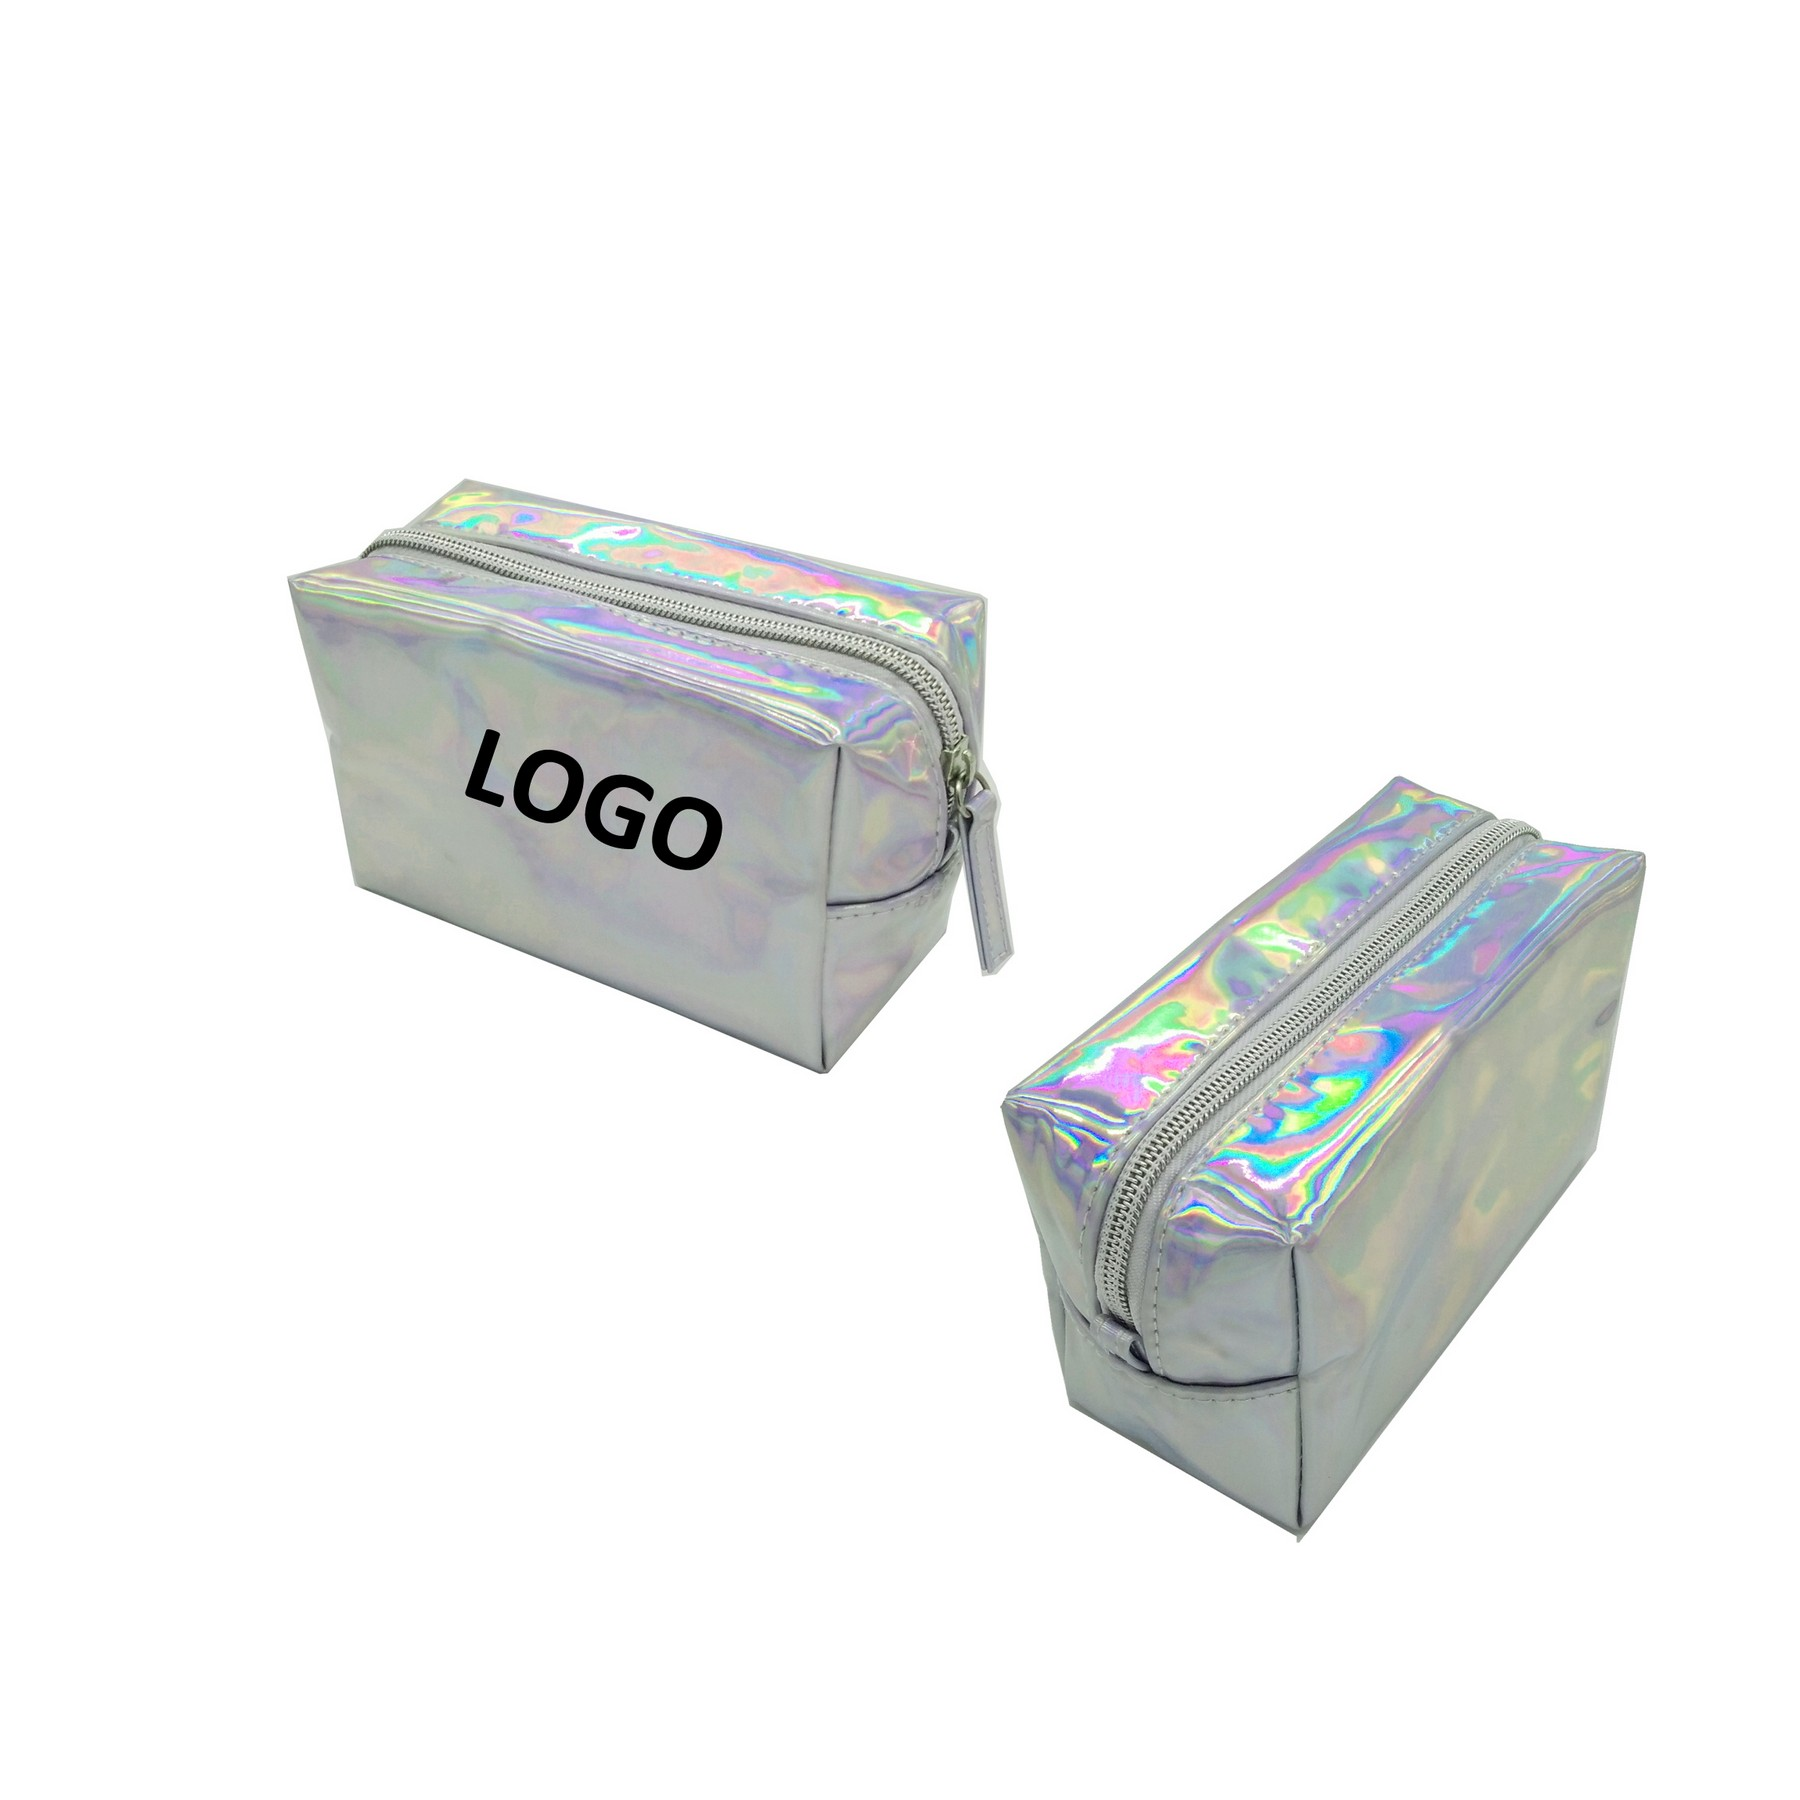 PVC Women Laser Magnificent Shiny Makeup Colorful Zipper Bag,Promotional LaserCosmeticBag Supplier